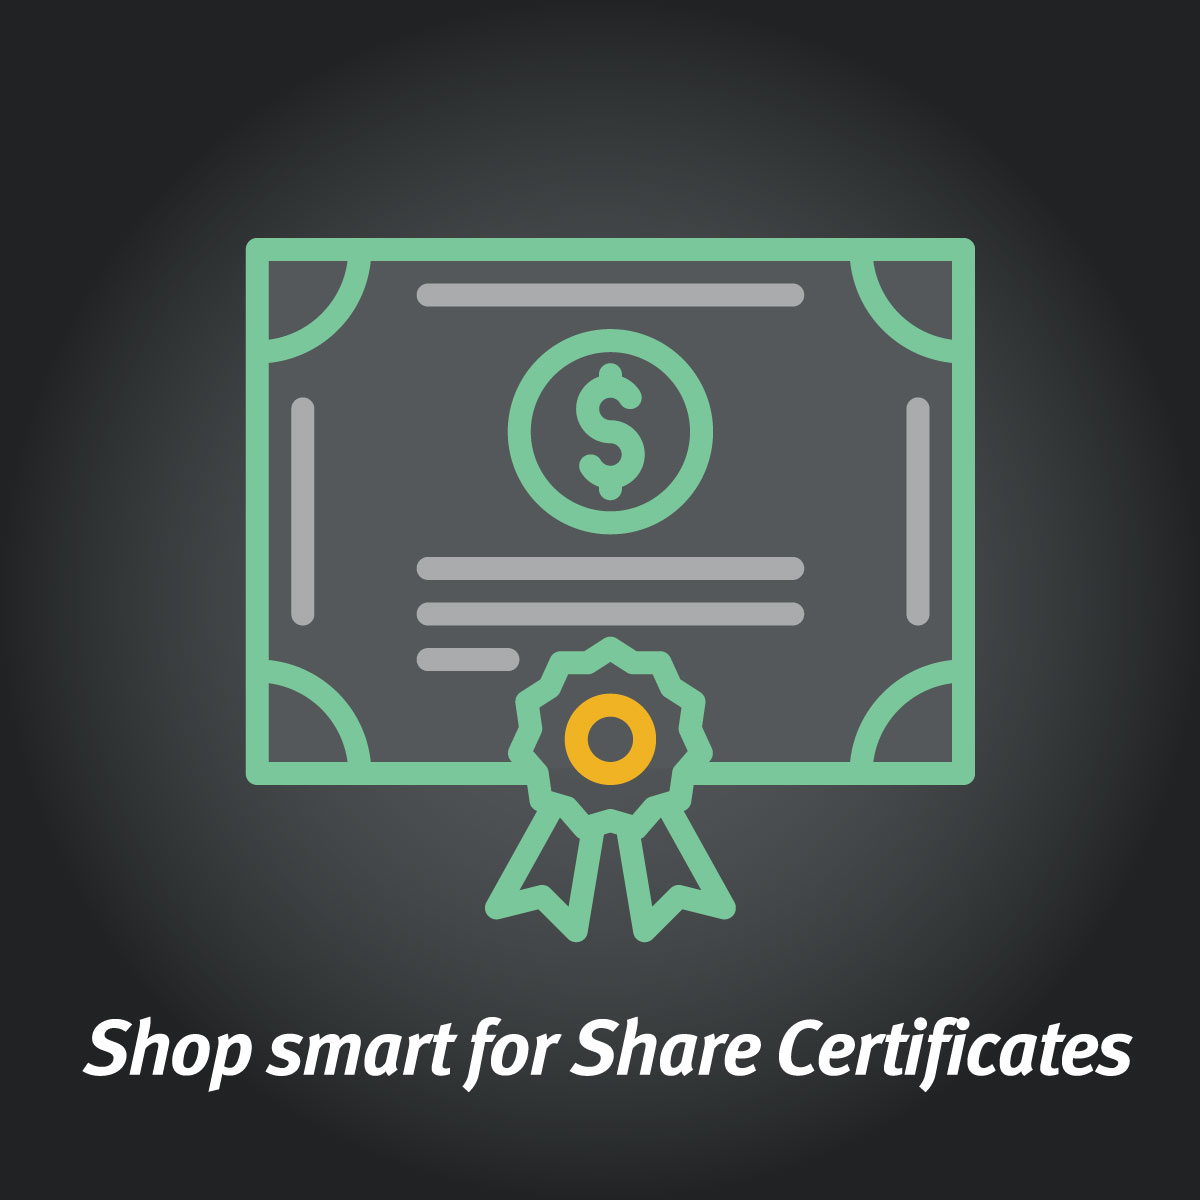 Shopping for Share Certificates